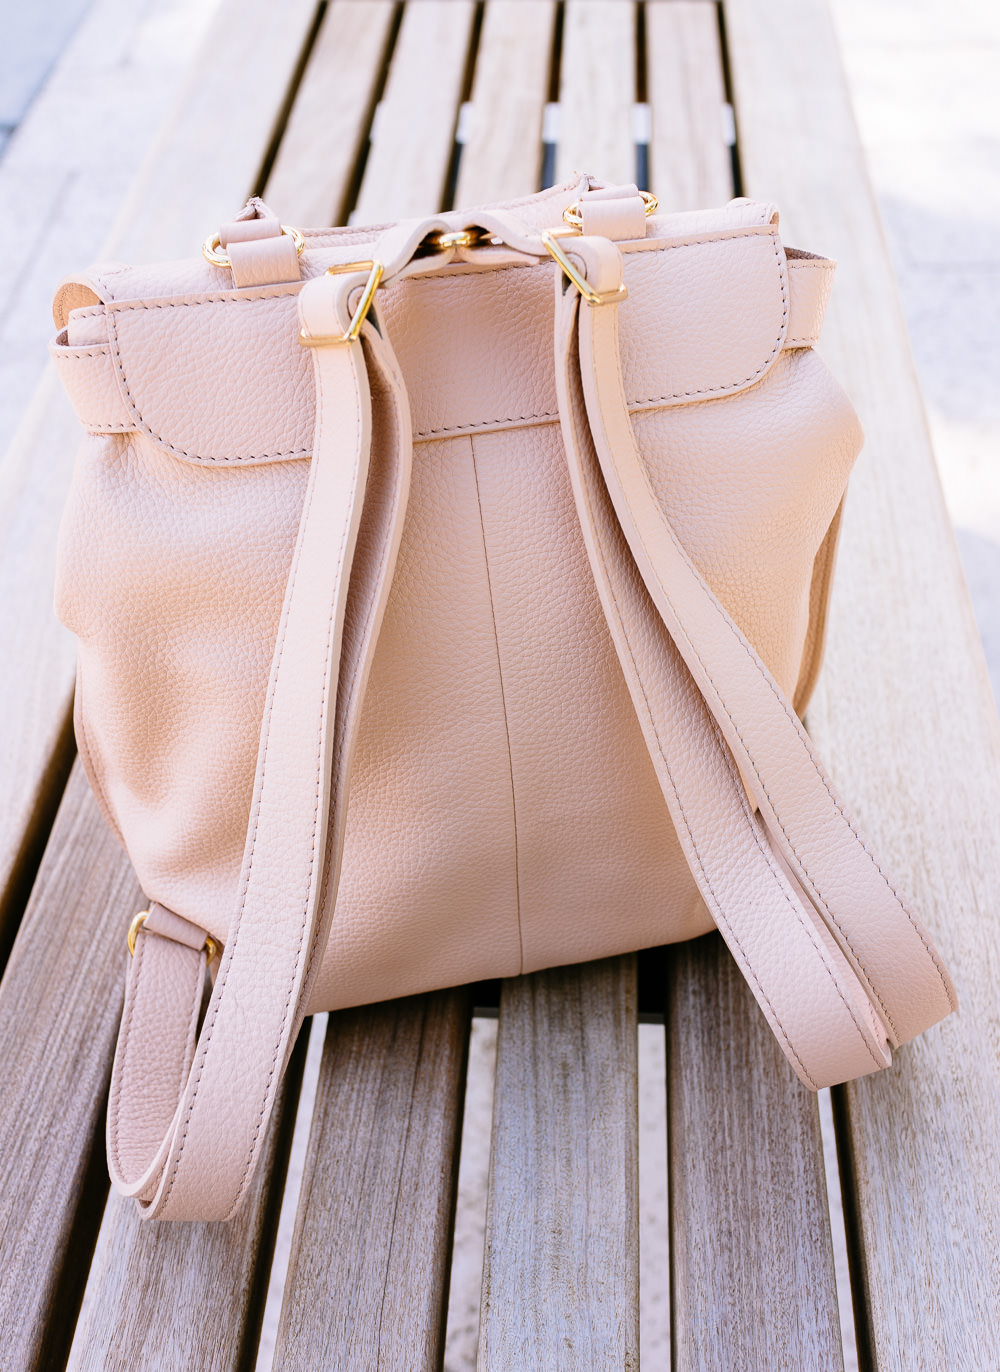 chloe handbags online - National Handbag Day Spotlight: See by Chlo�� Lizzie Convertible ...